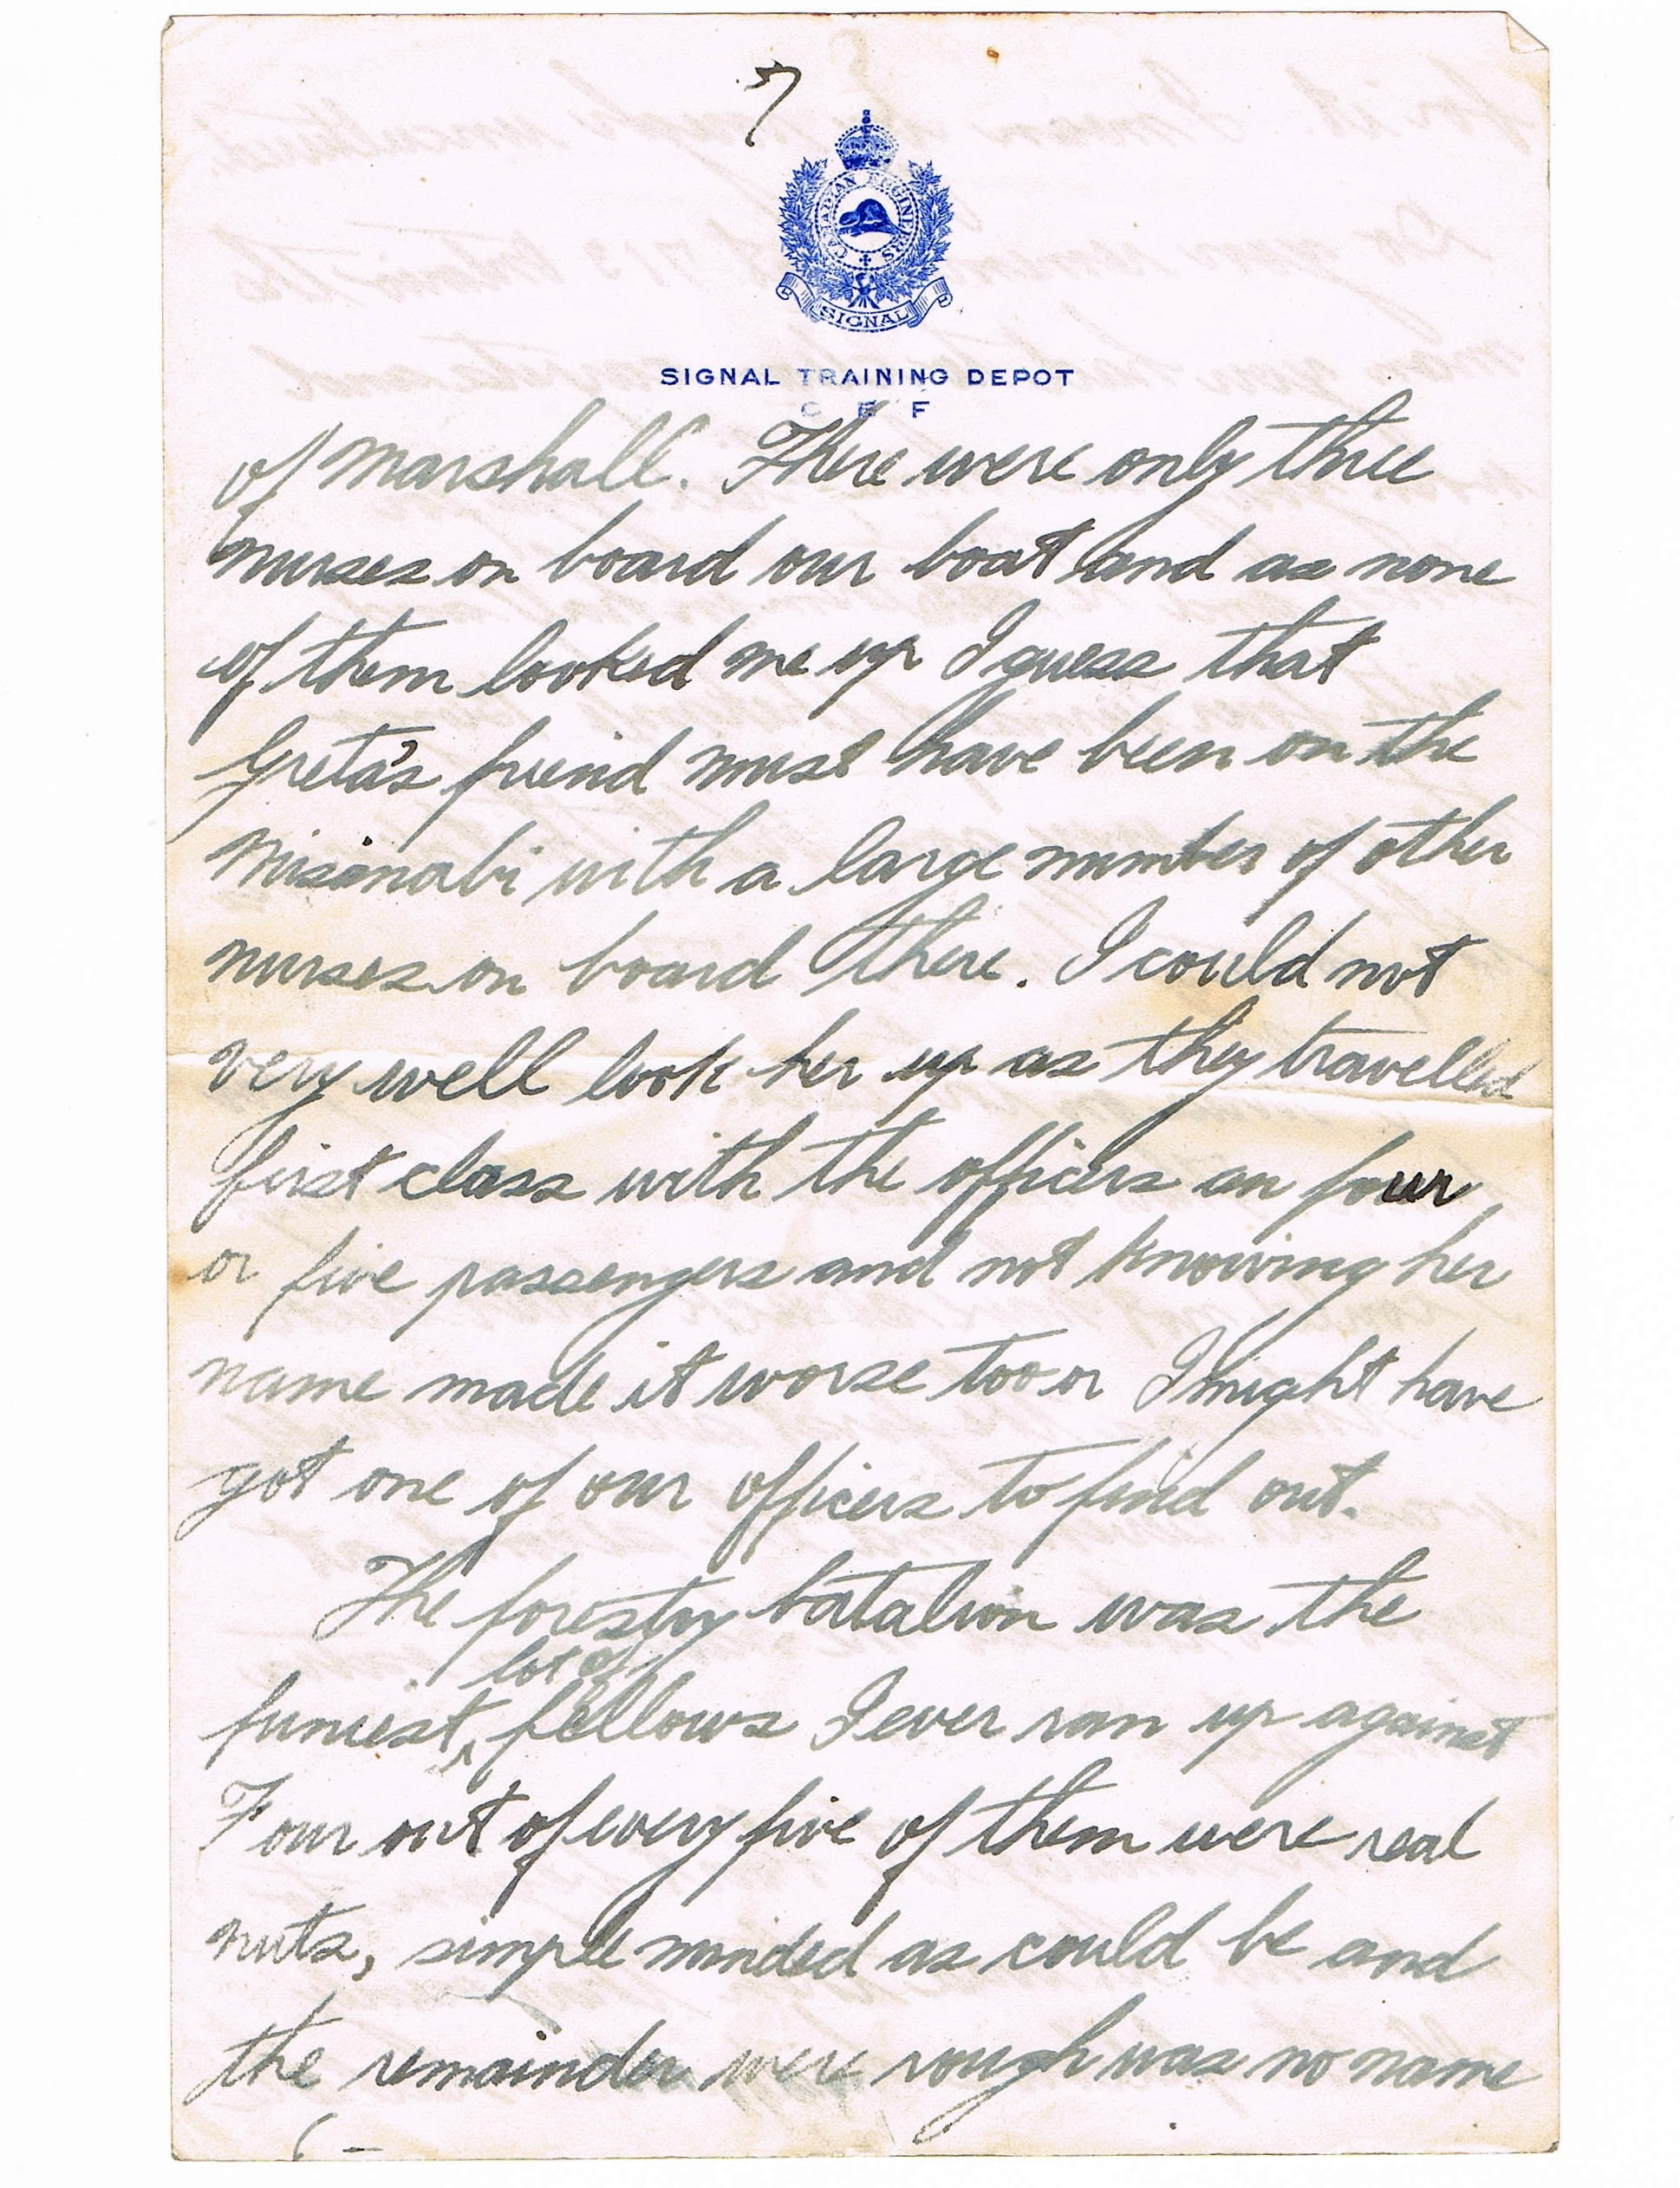 Seventh page of handwritten letter